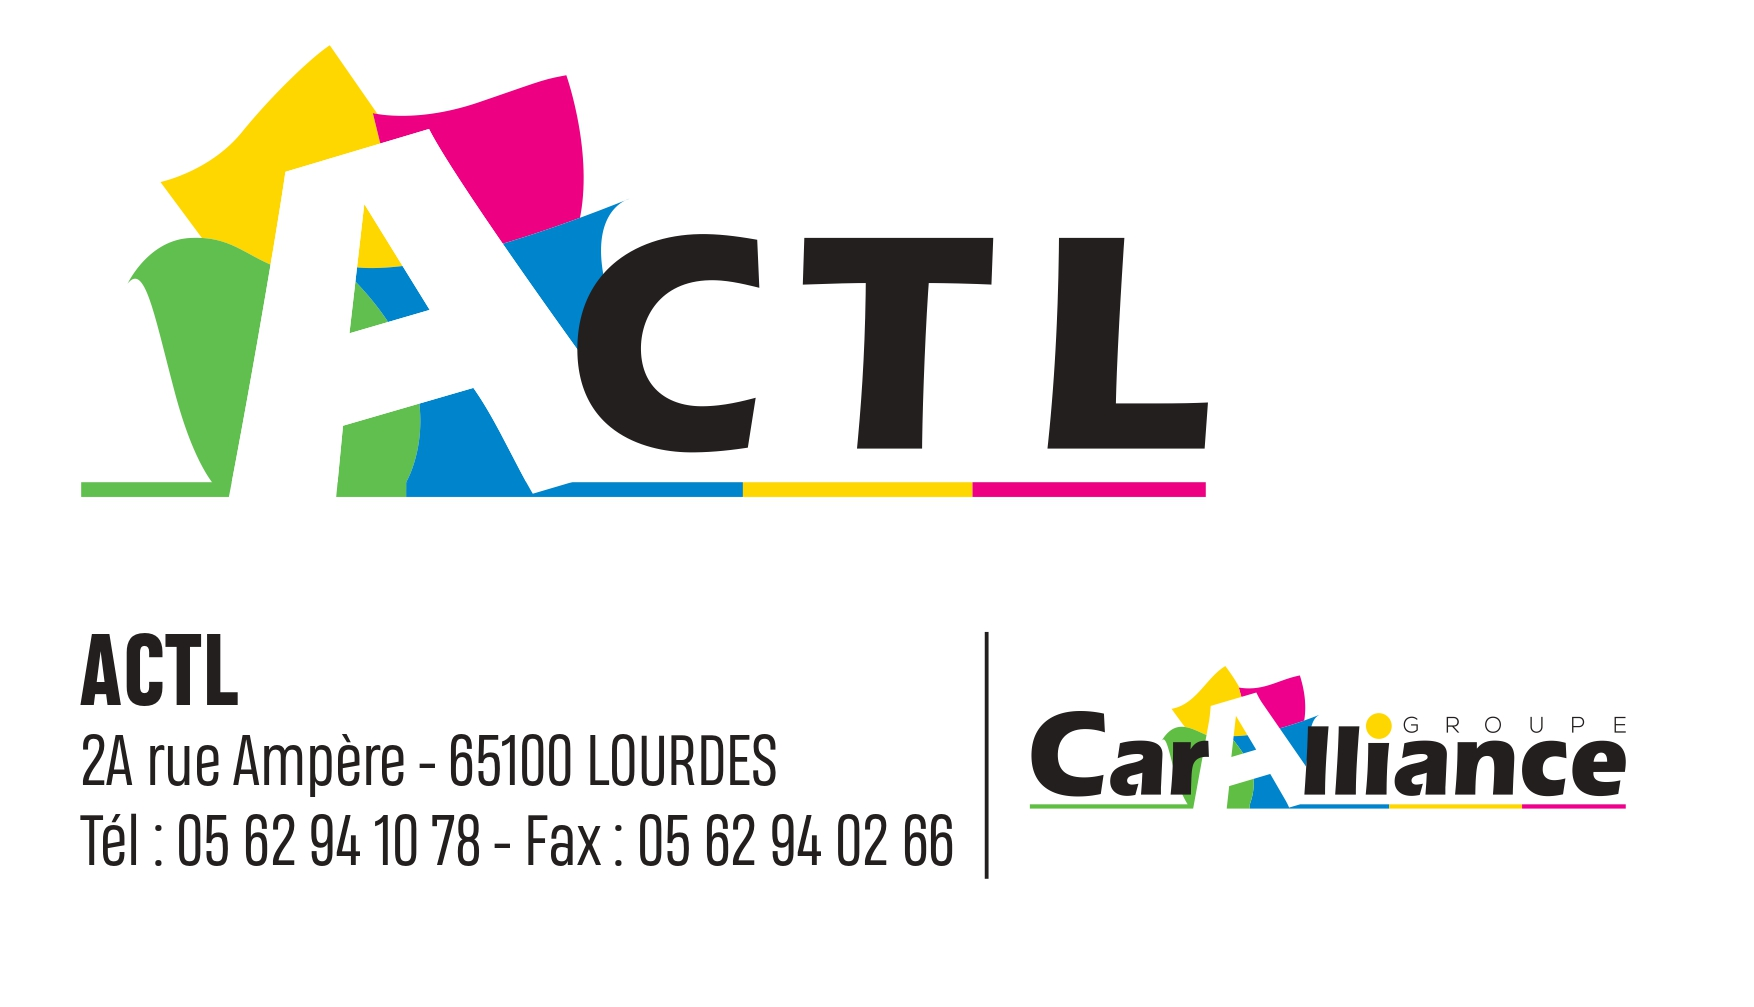 ACTL Caralliance